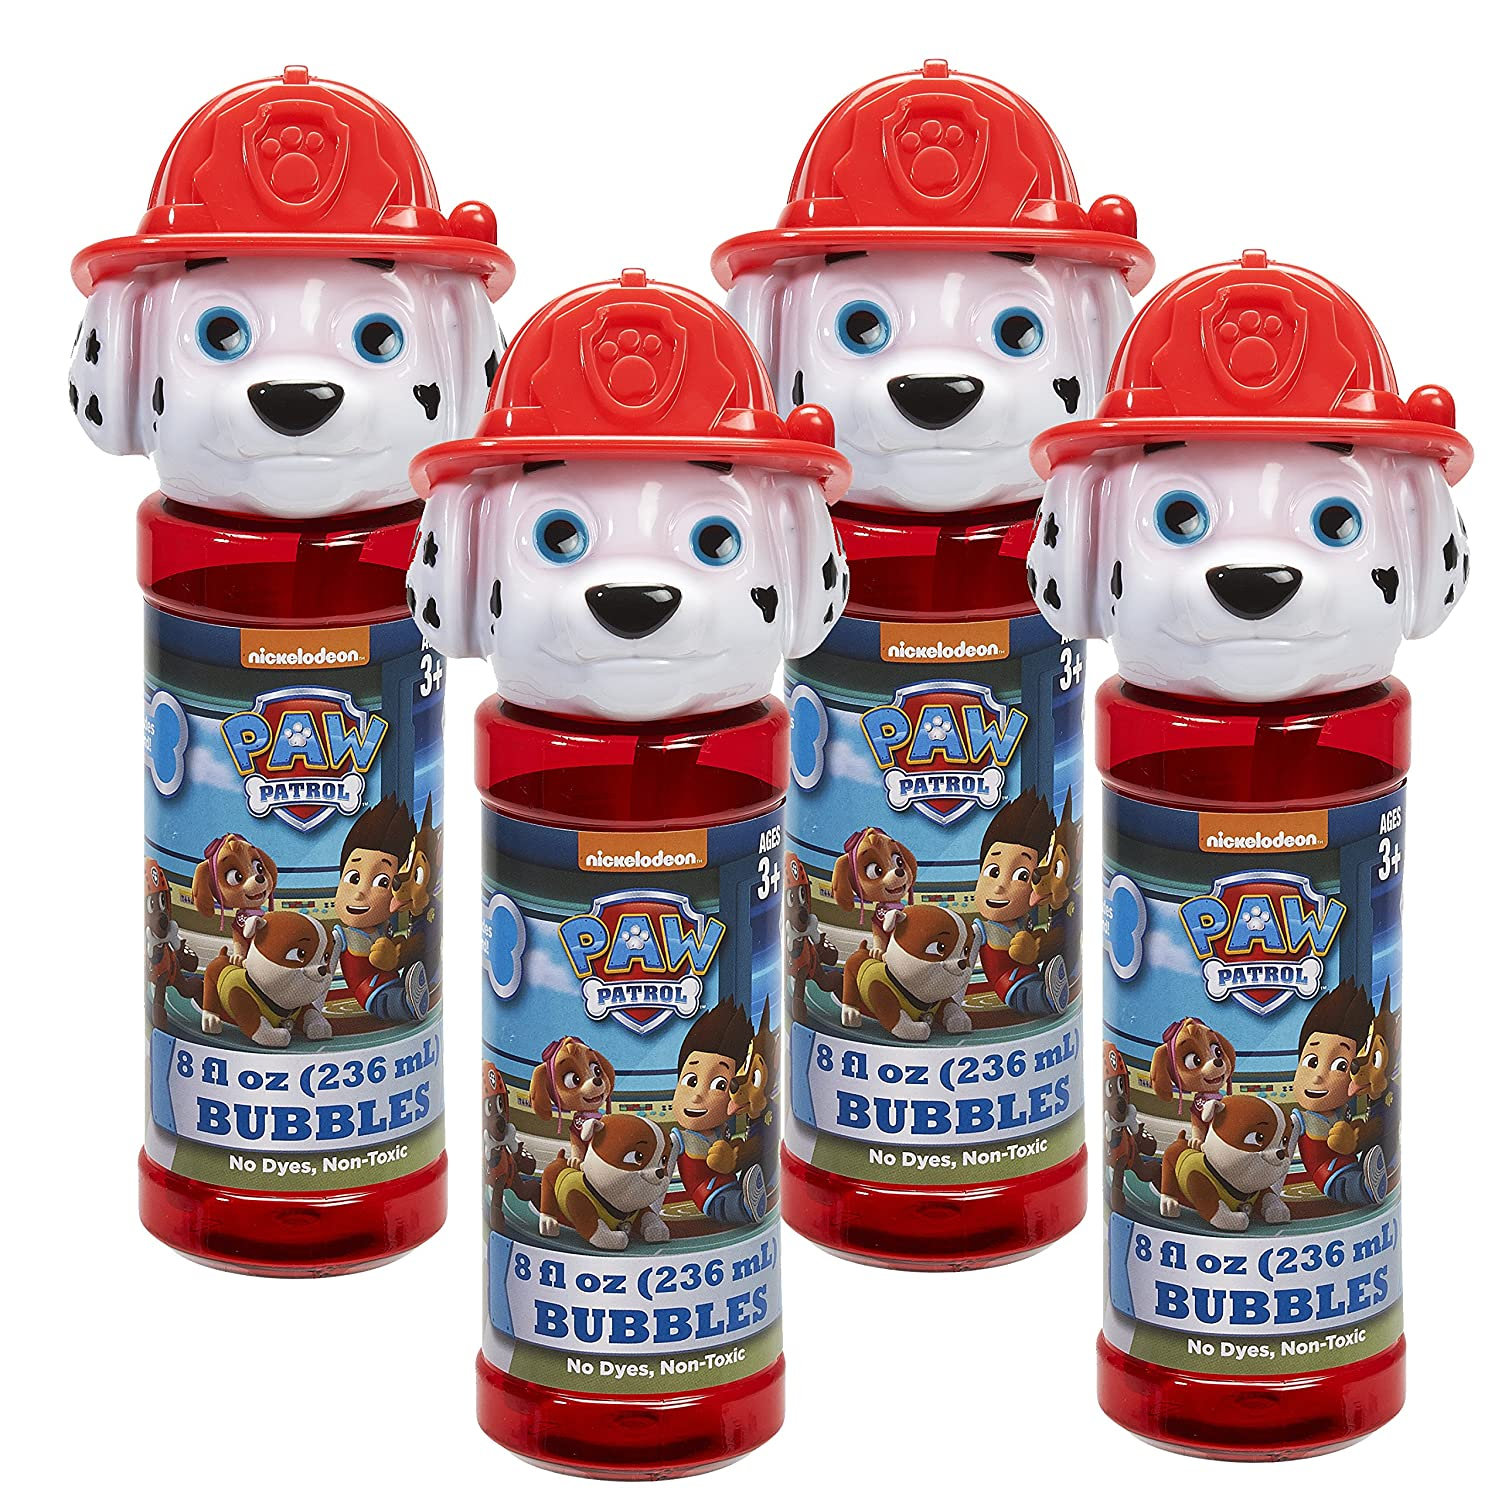 Little Kids Paw Patrol Marshall 8 oz Bubble Head with Wand Set 4 Piece